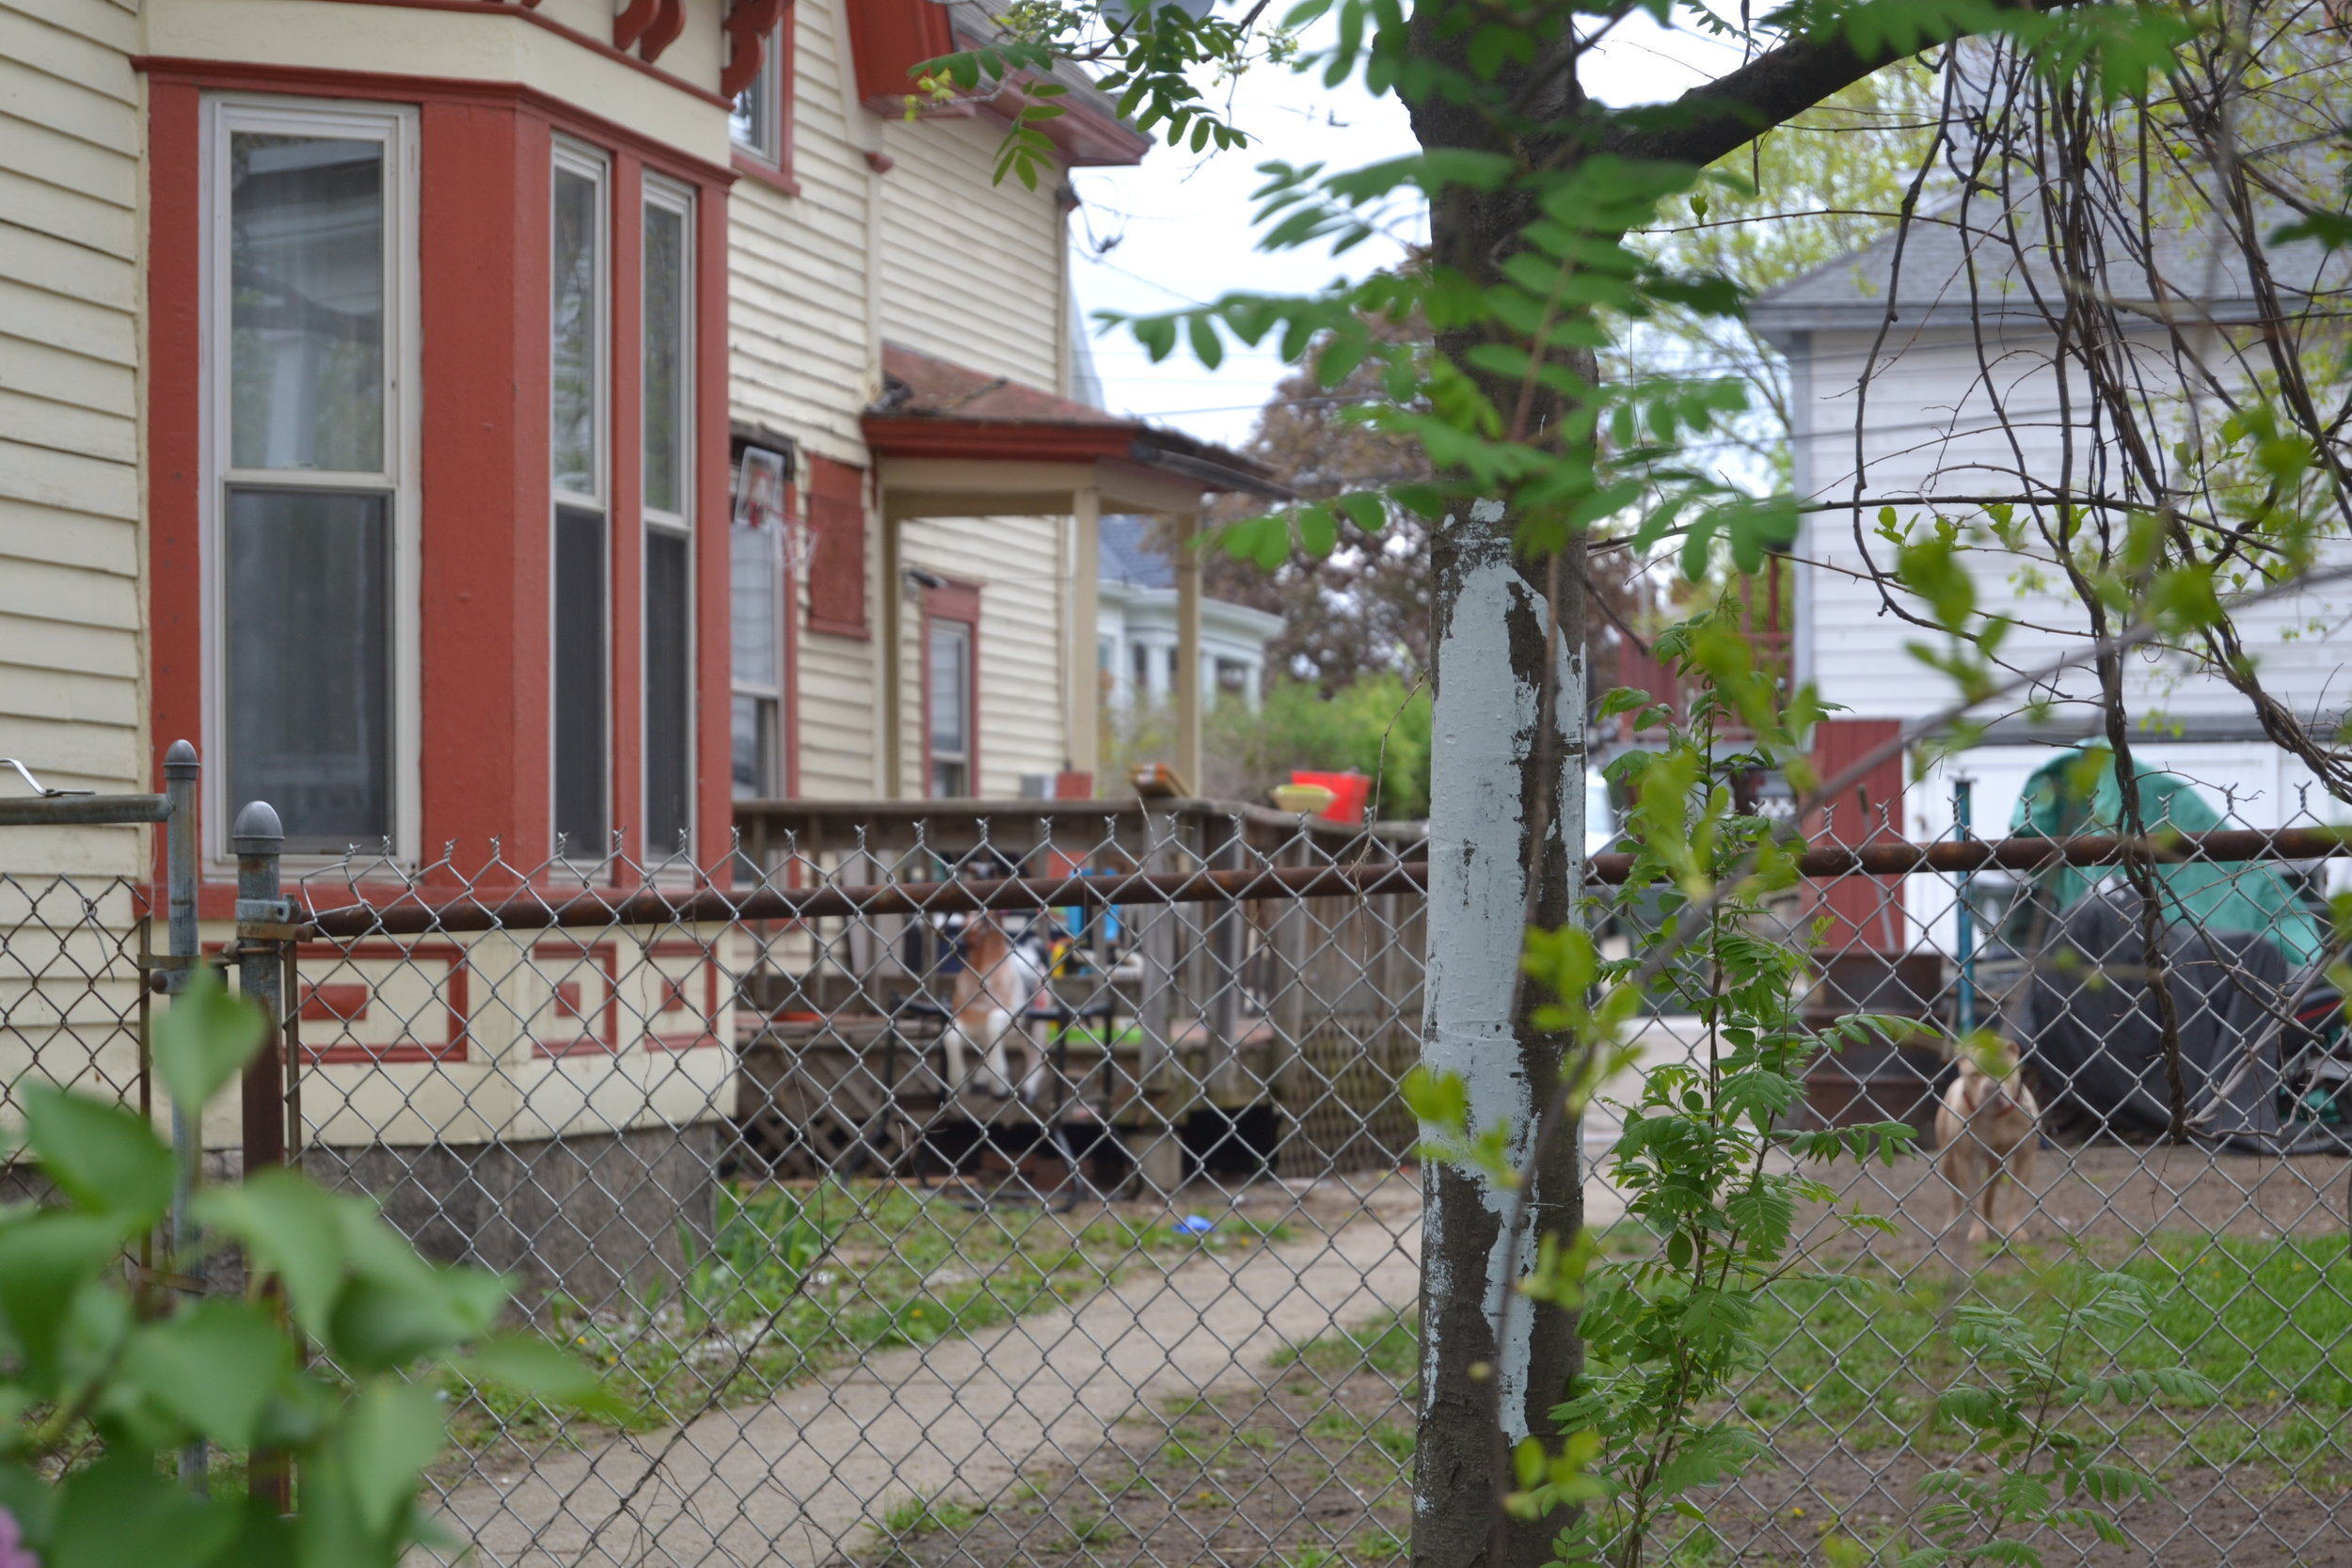 """A side-view of the same house that firefighters suspect is operating as a """"recovery house.""""   CREDIT PAIGE SUTHERLAND/NHPR"""